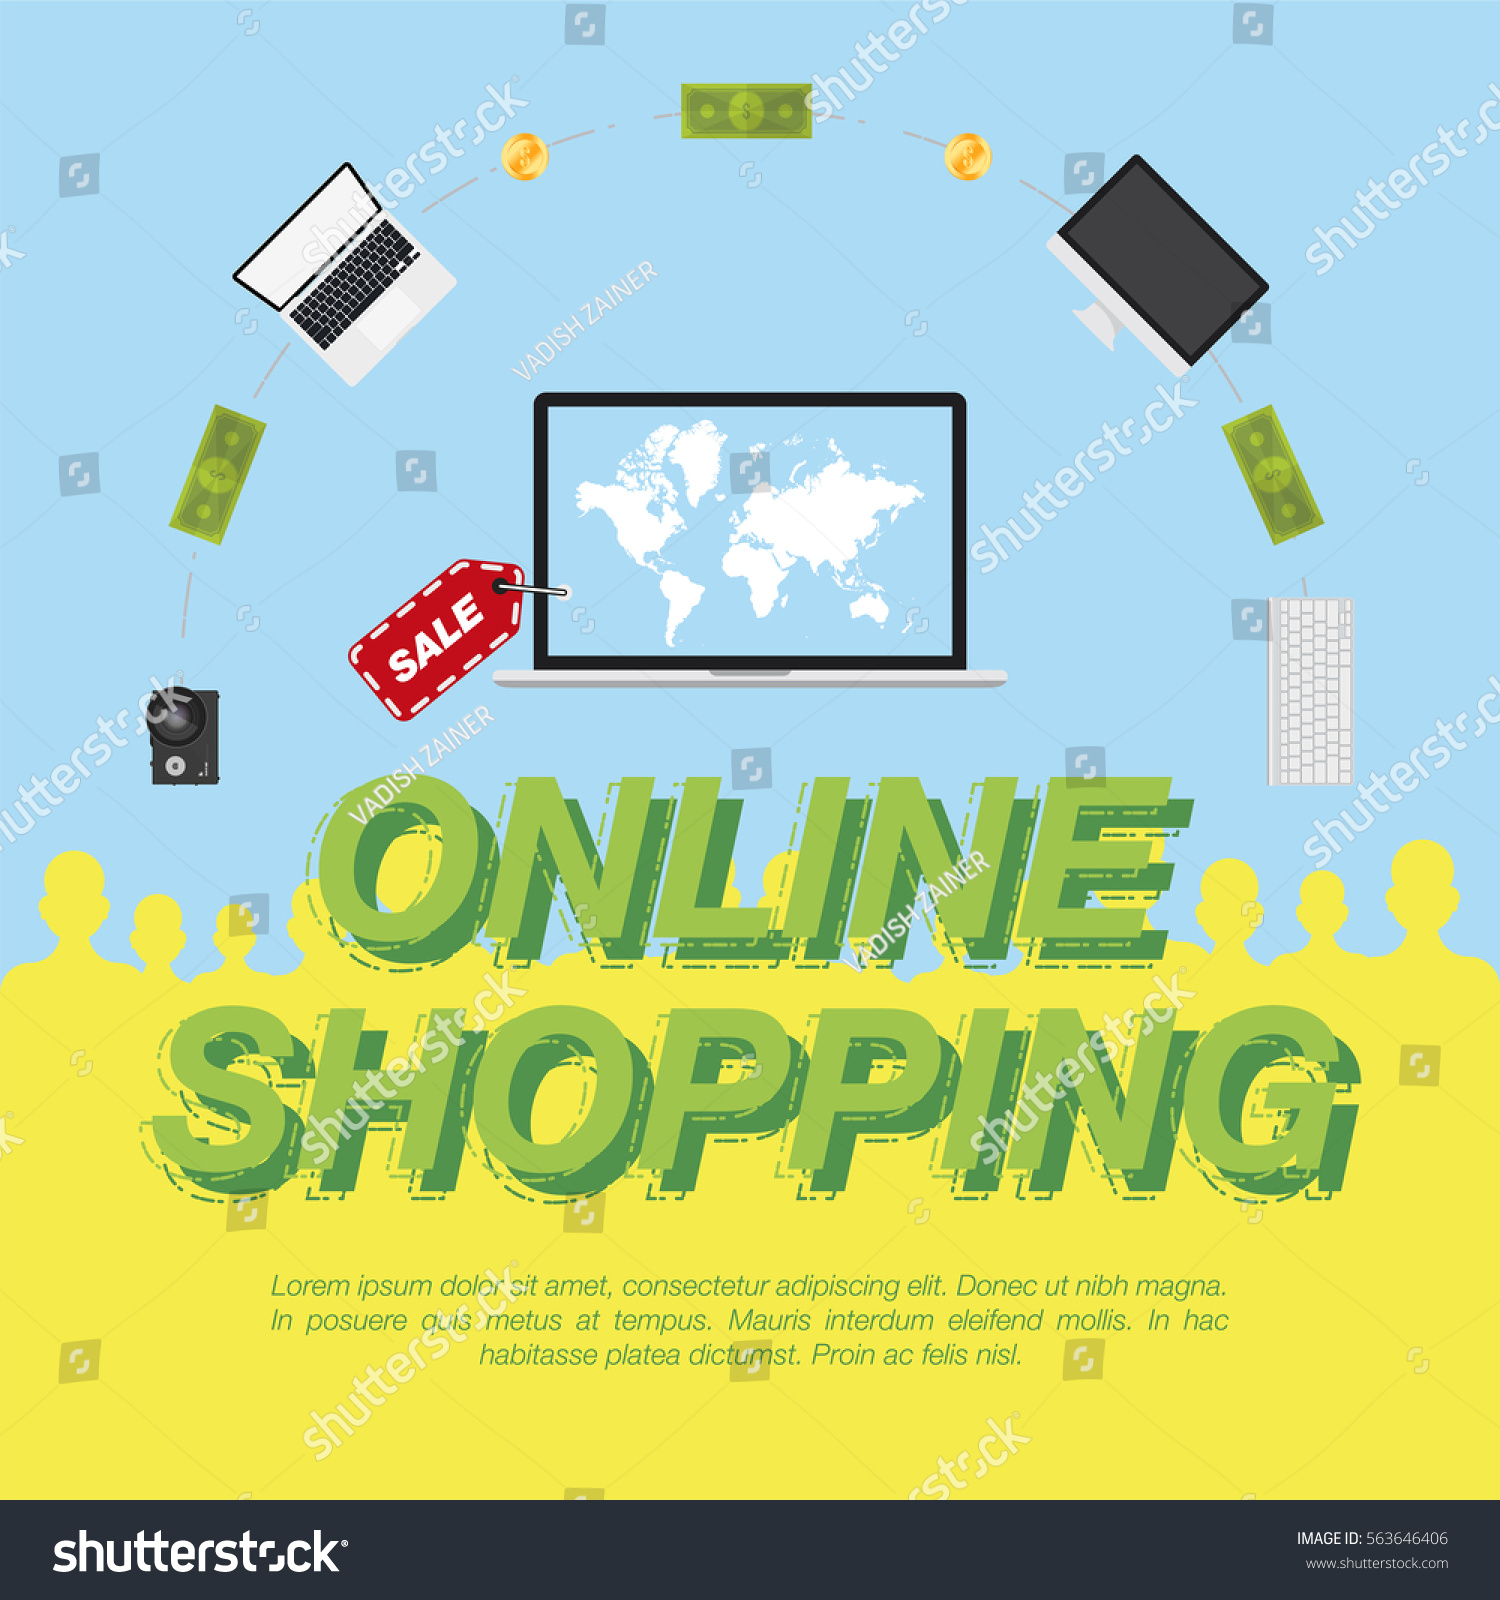 Online shop concept on sale digital stock vector 2018 563646406 online shop concept on the sale of digital technology world map on the screen gumiabroncs Gallery